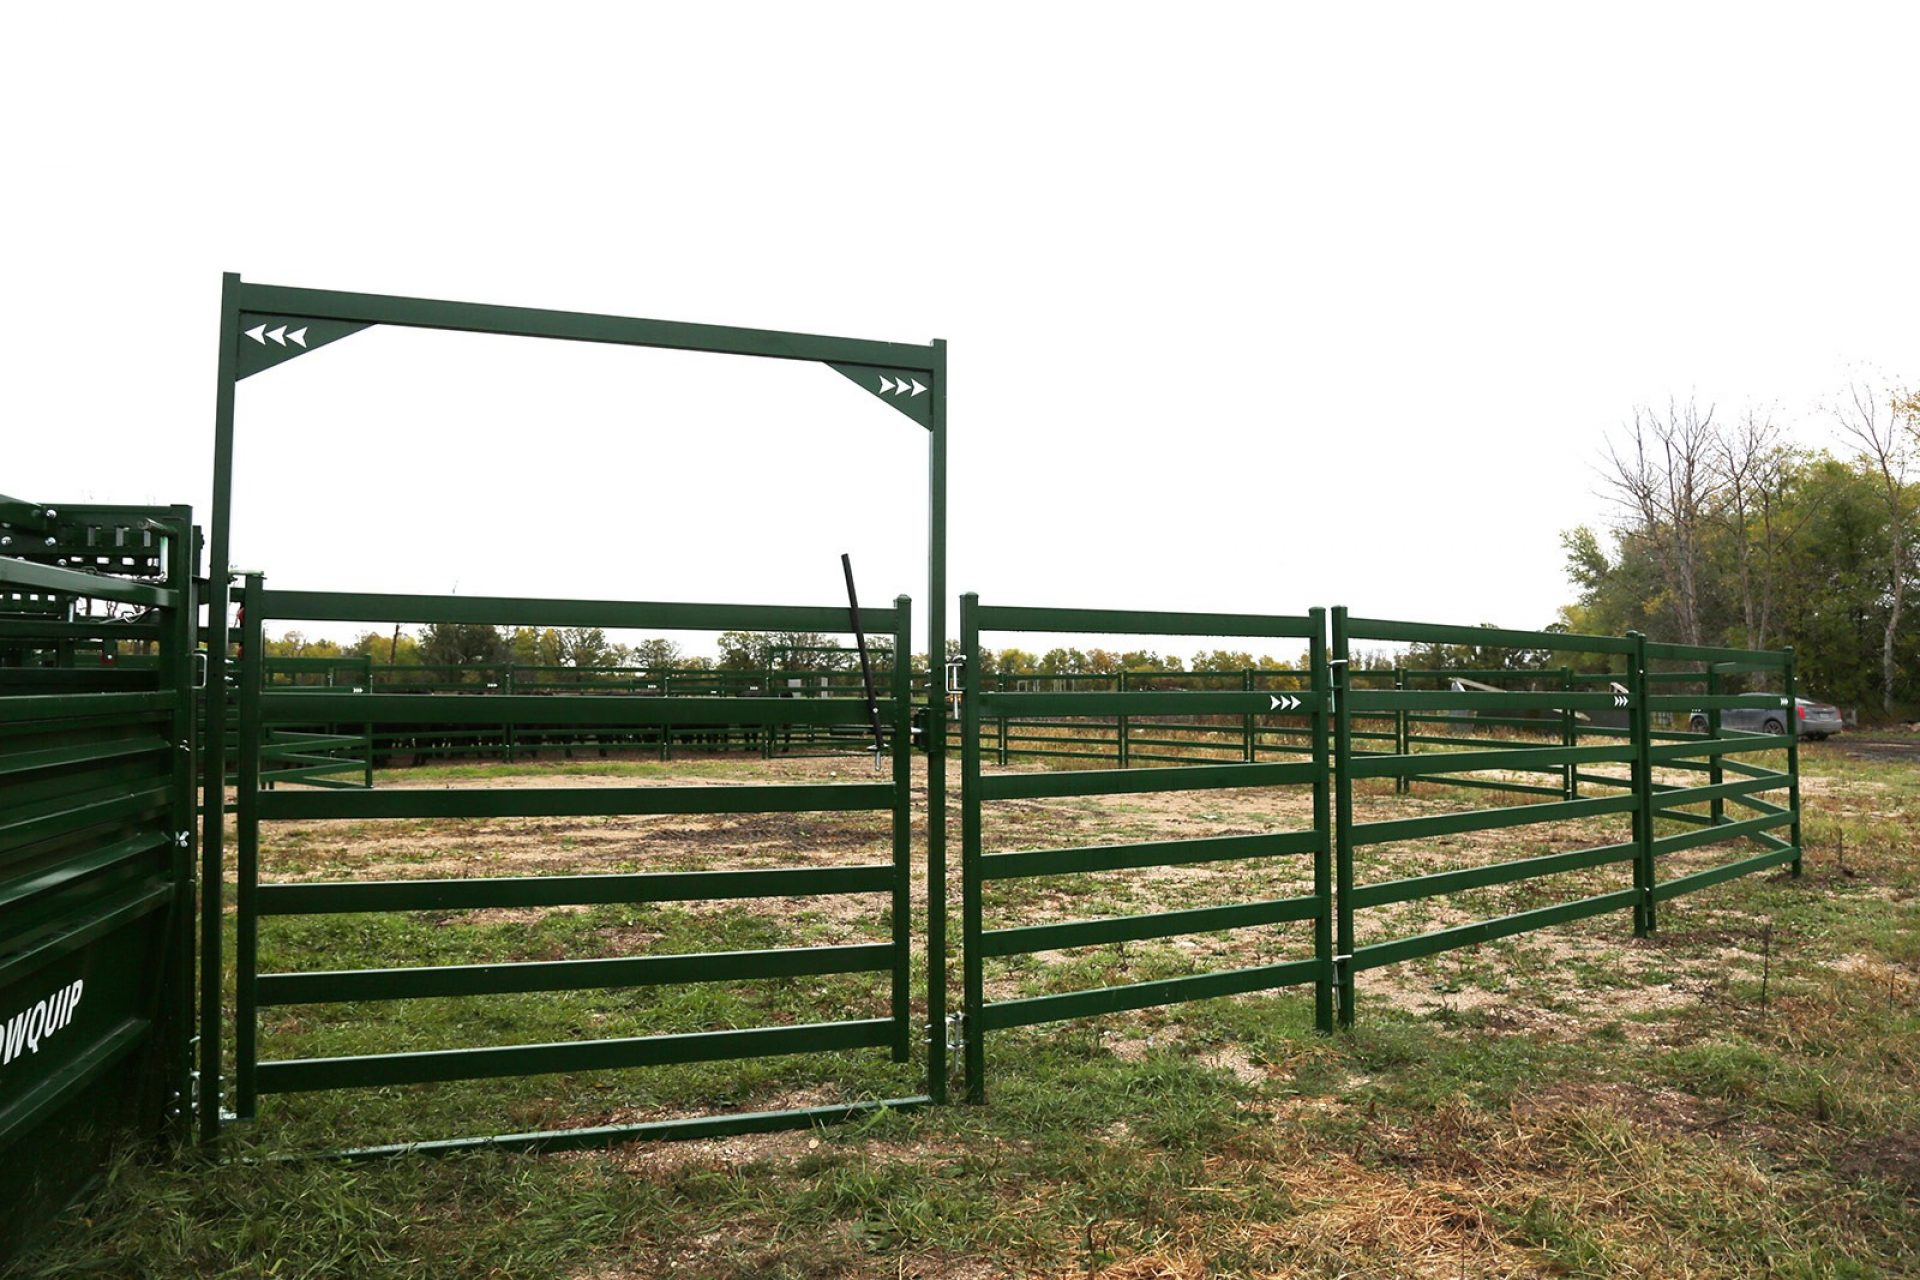 Arrow High Bow Gate for cattle corrals